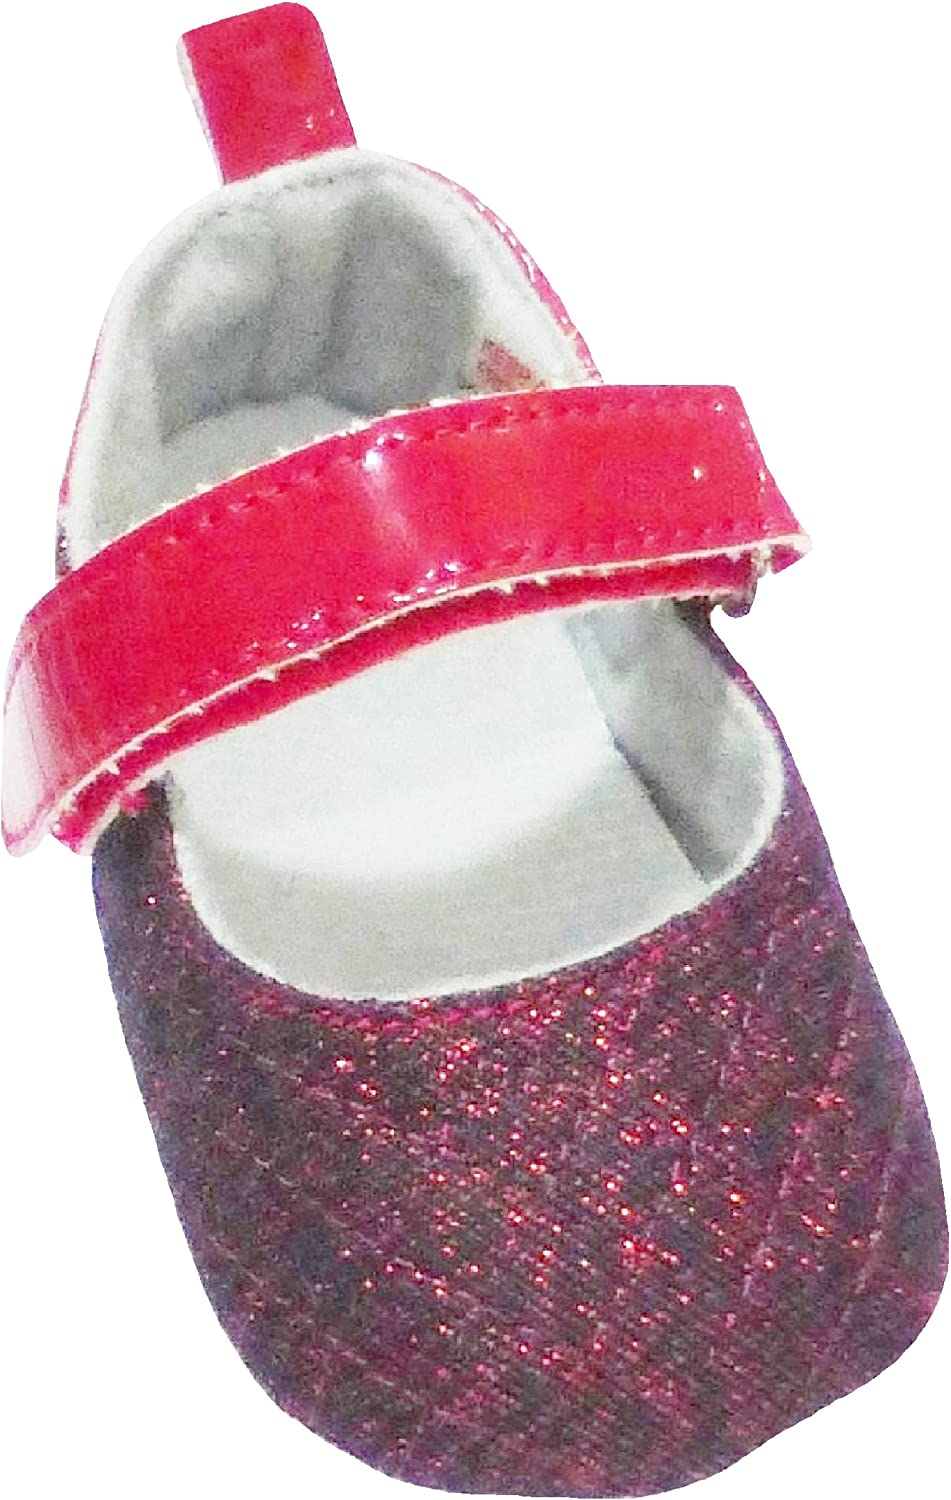 4.5 Insole Baby Shoes with Burgundy Sparkling Front 12-15 Months